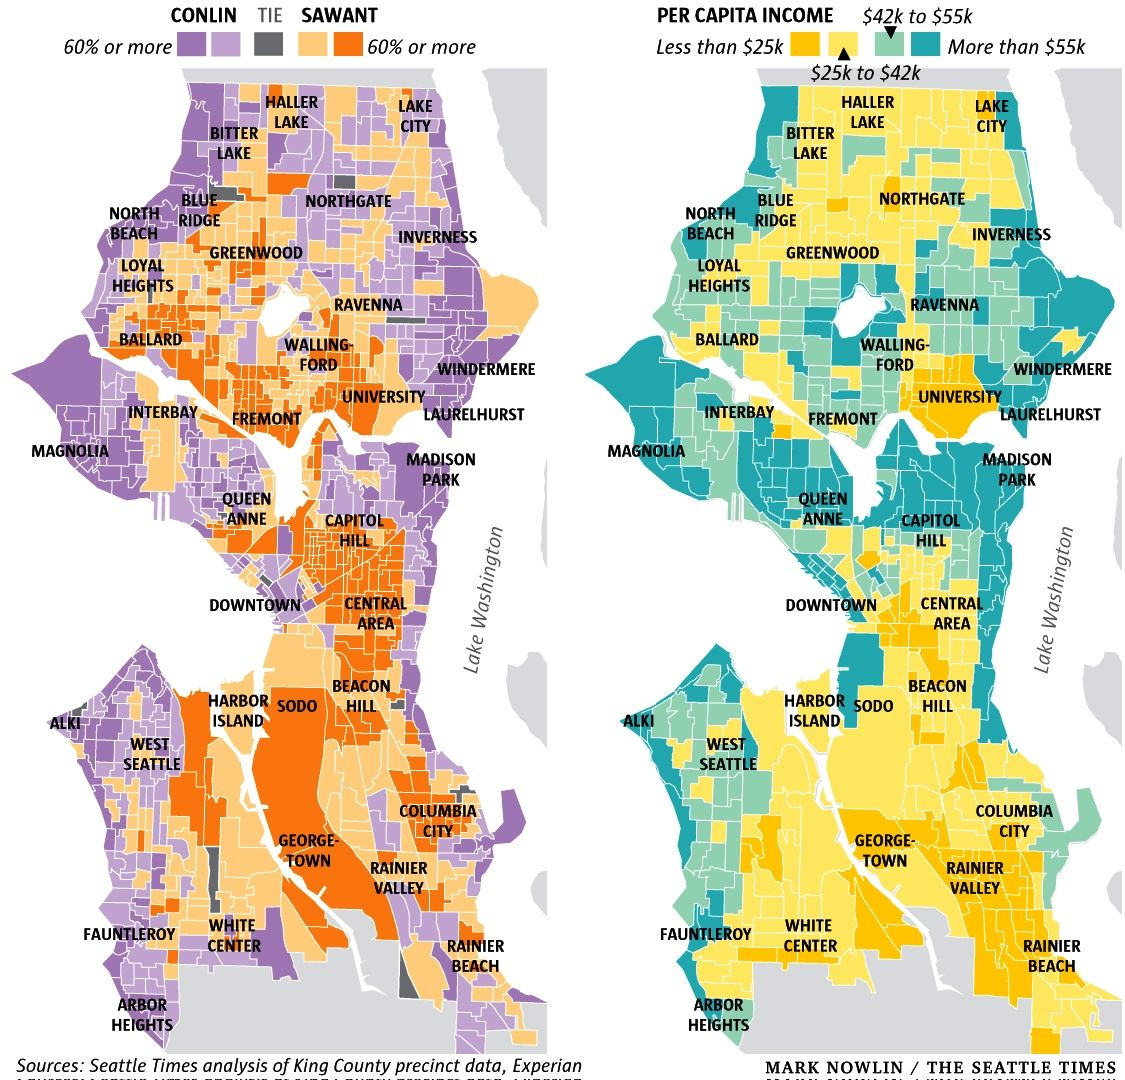 Infographic Maps Of Seattle Voting Patterns And Incomes - Map puget sound area